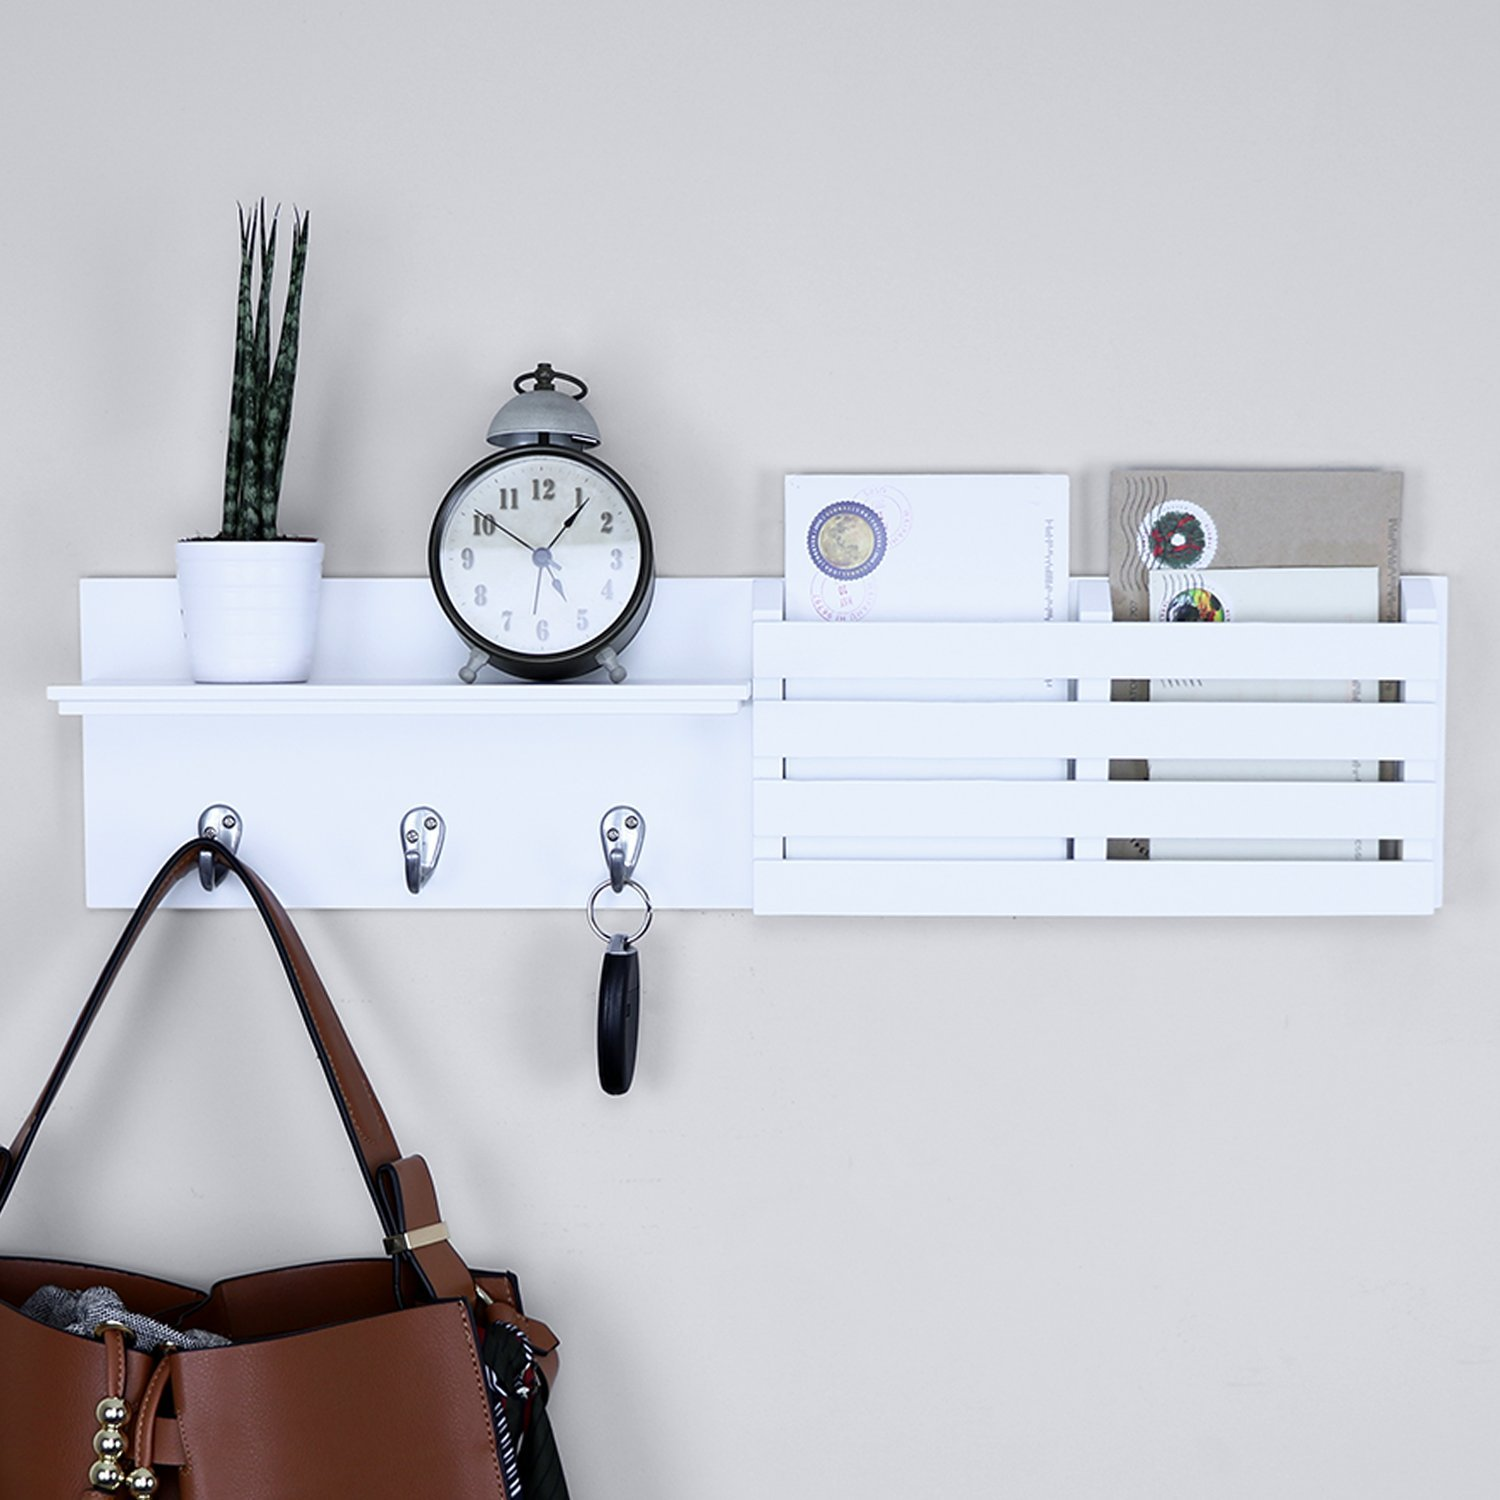 Ballucci Mail Holder and Coat Key Rack Wall Shelf with 3 Hooks, 24'' x 6'', White by Ballucci